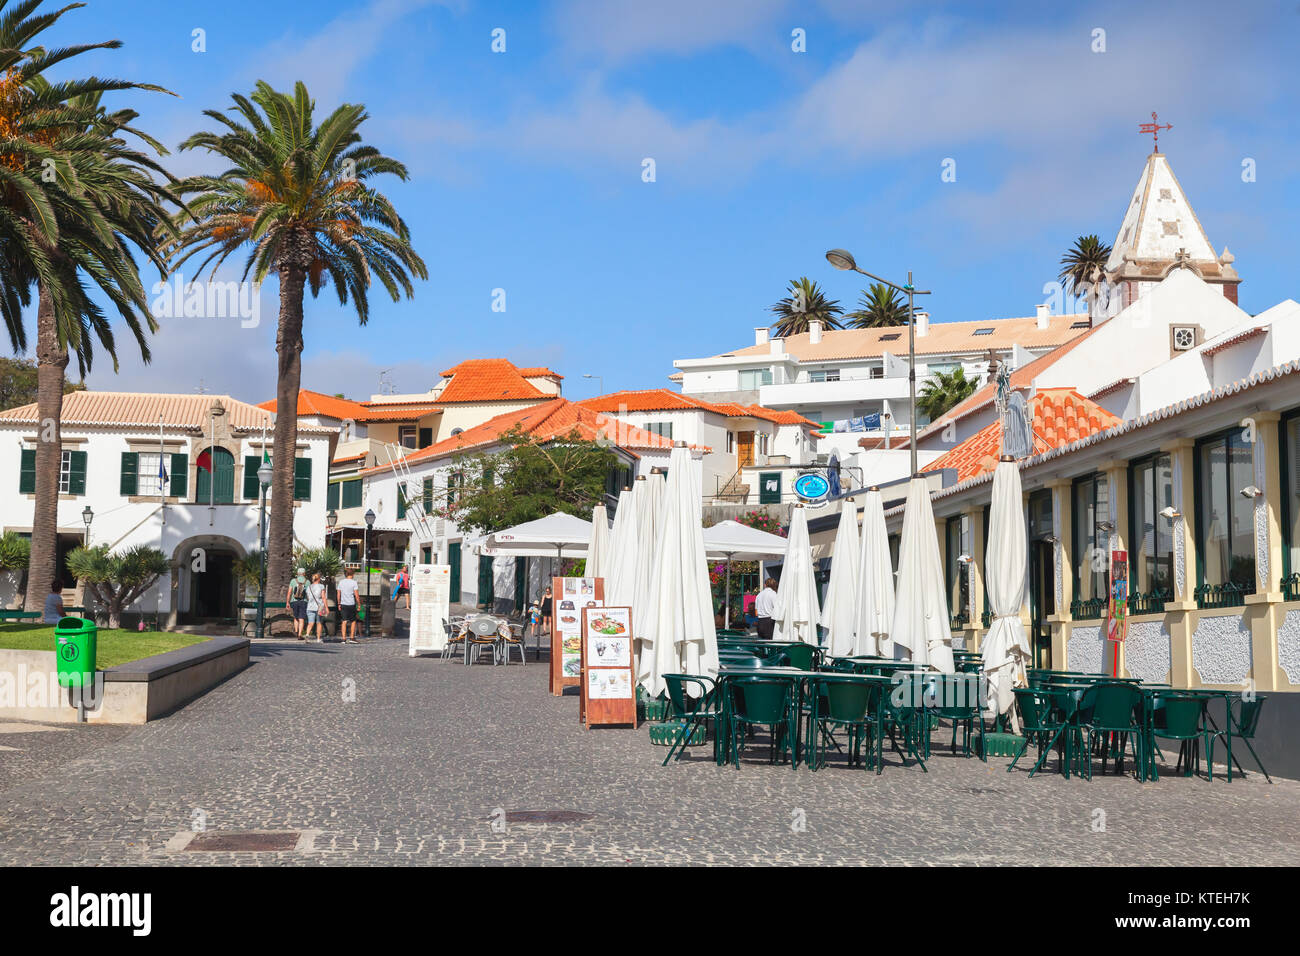 Vila Baleira, Portugal - August 18, 2017: Street view of Largo do Pelourinho street of Vila Baleira the only city - Stock Image